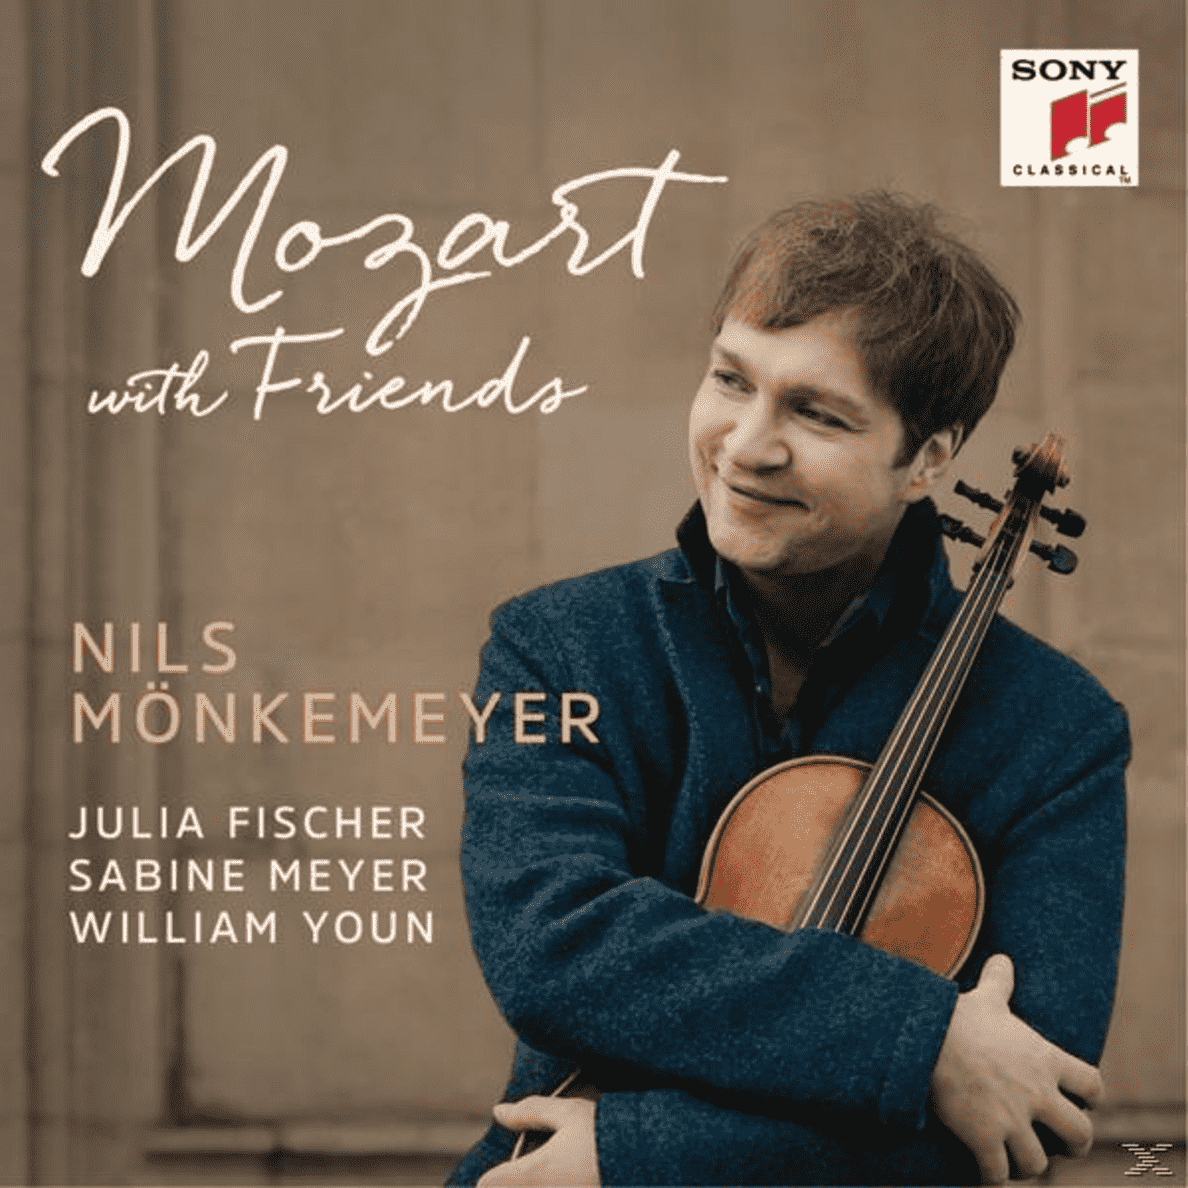 Mozart Nils Mönkemeyer, William Youn, Meyer Sabine, Fischer Julia auf CD